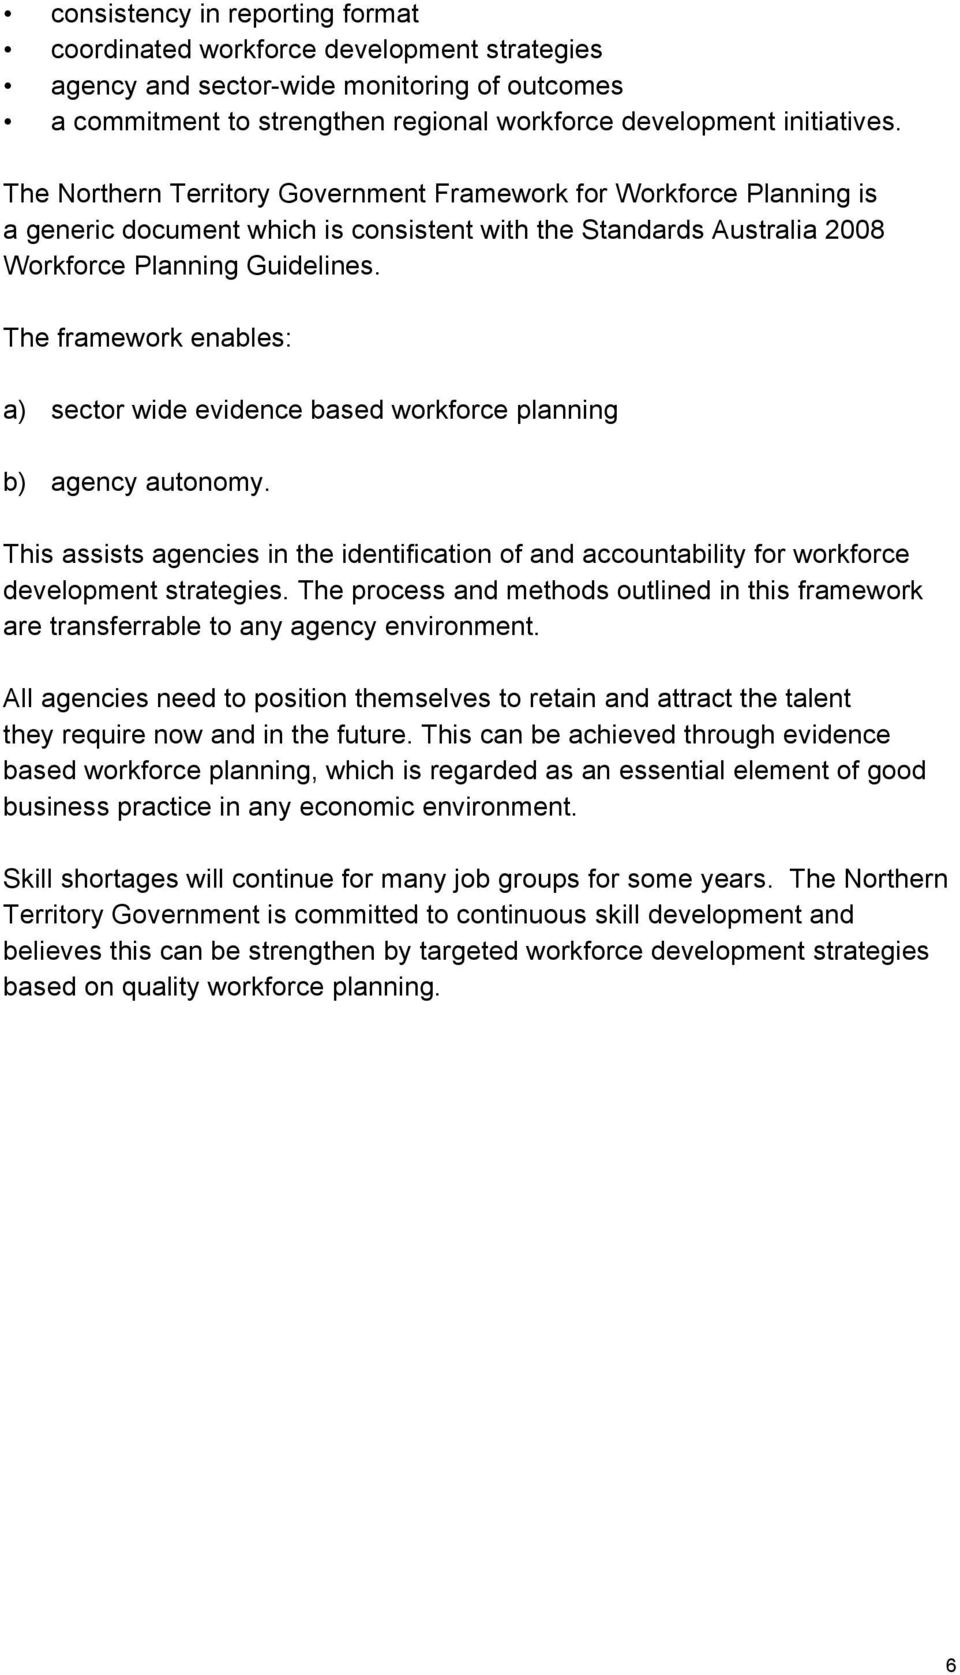 The framework enables: a) sector wide evidence based workforce planning b) agency autonomy. This assists agencies in the identification of and accountability for workforce development strategies.